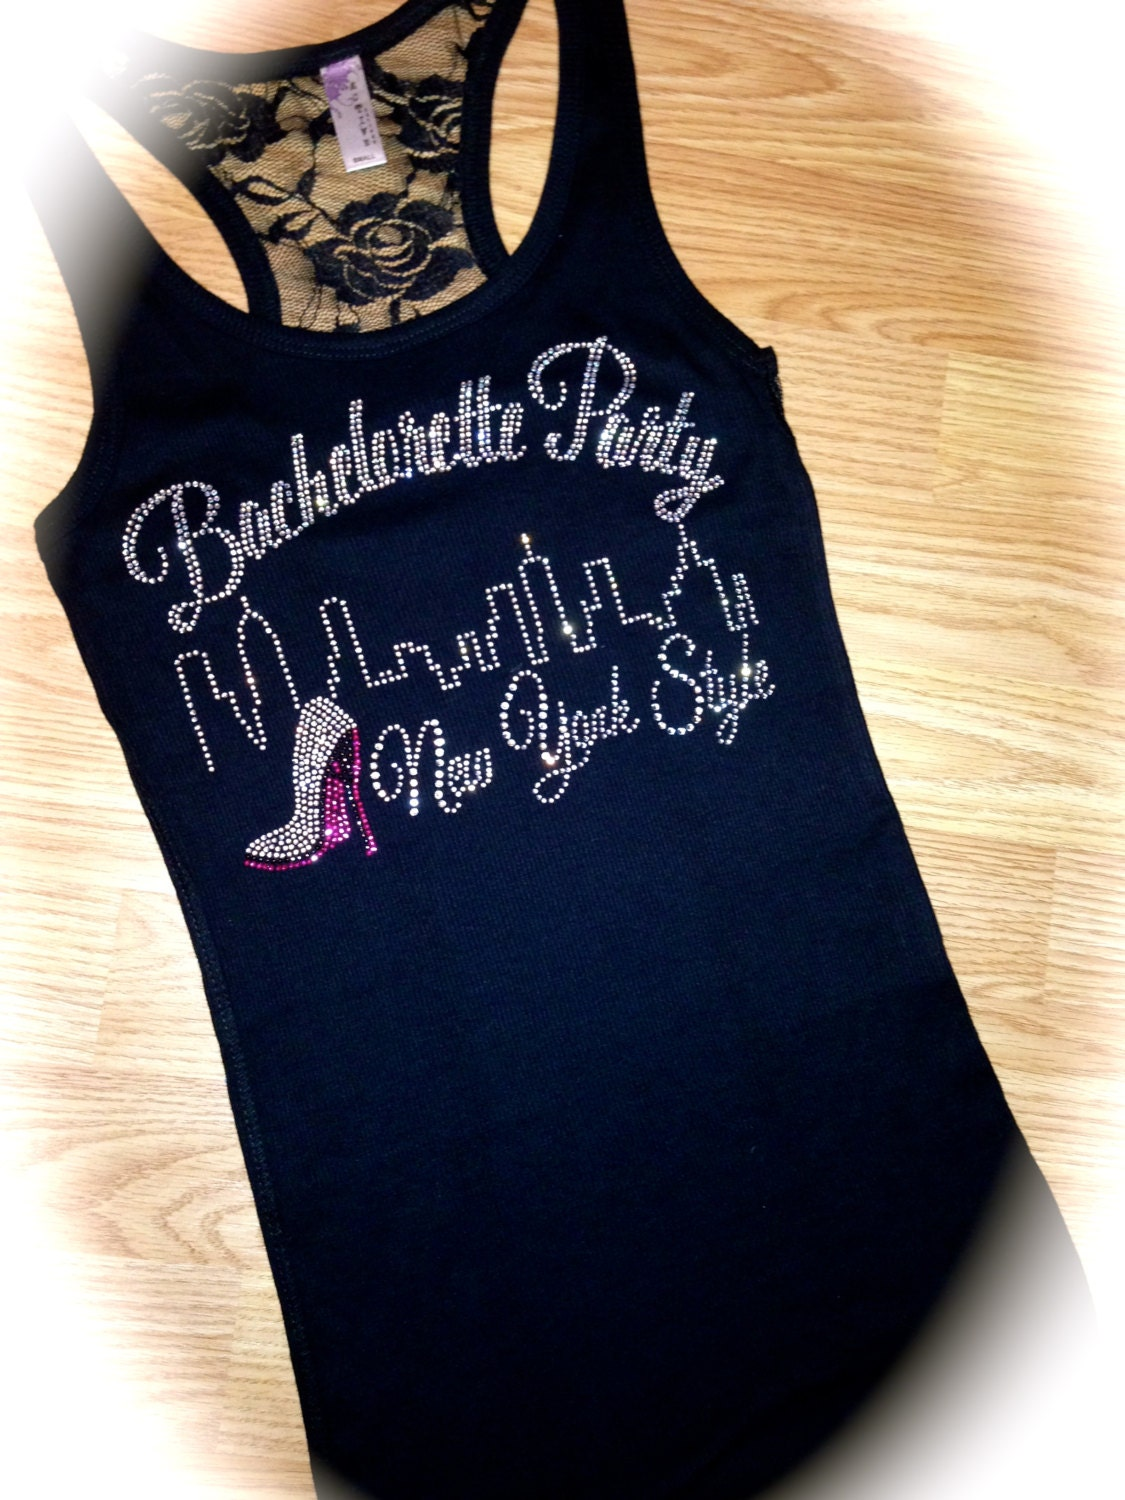 new york bachelorette party bling tank tops lace bridesmaid. Black Bedroom Furniture Sets. Home Design Ideas